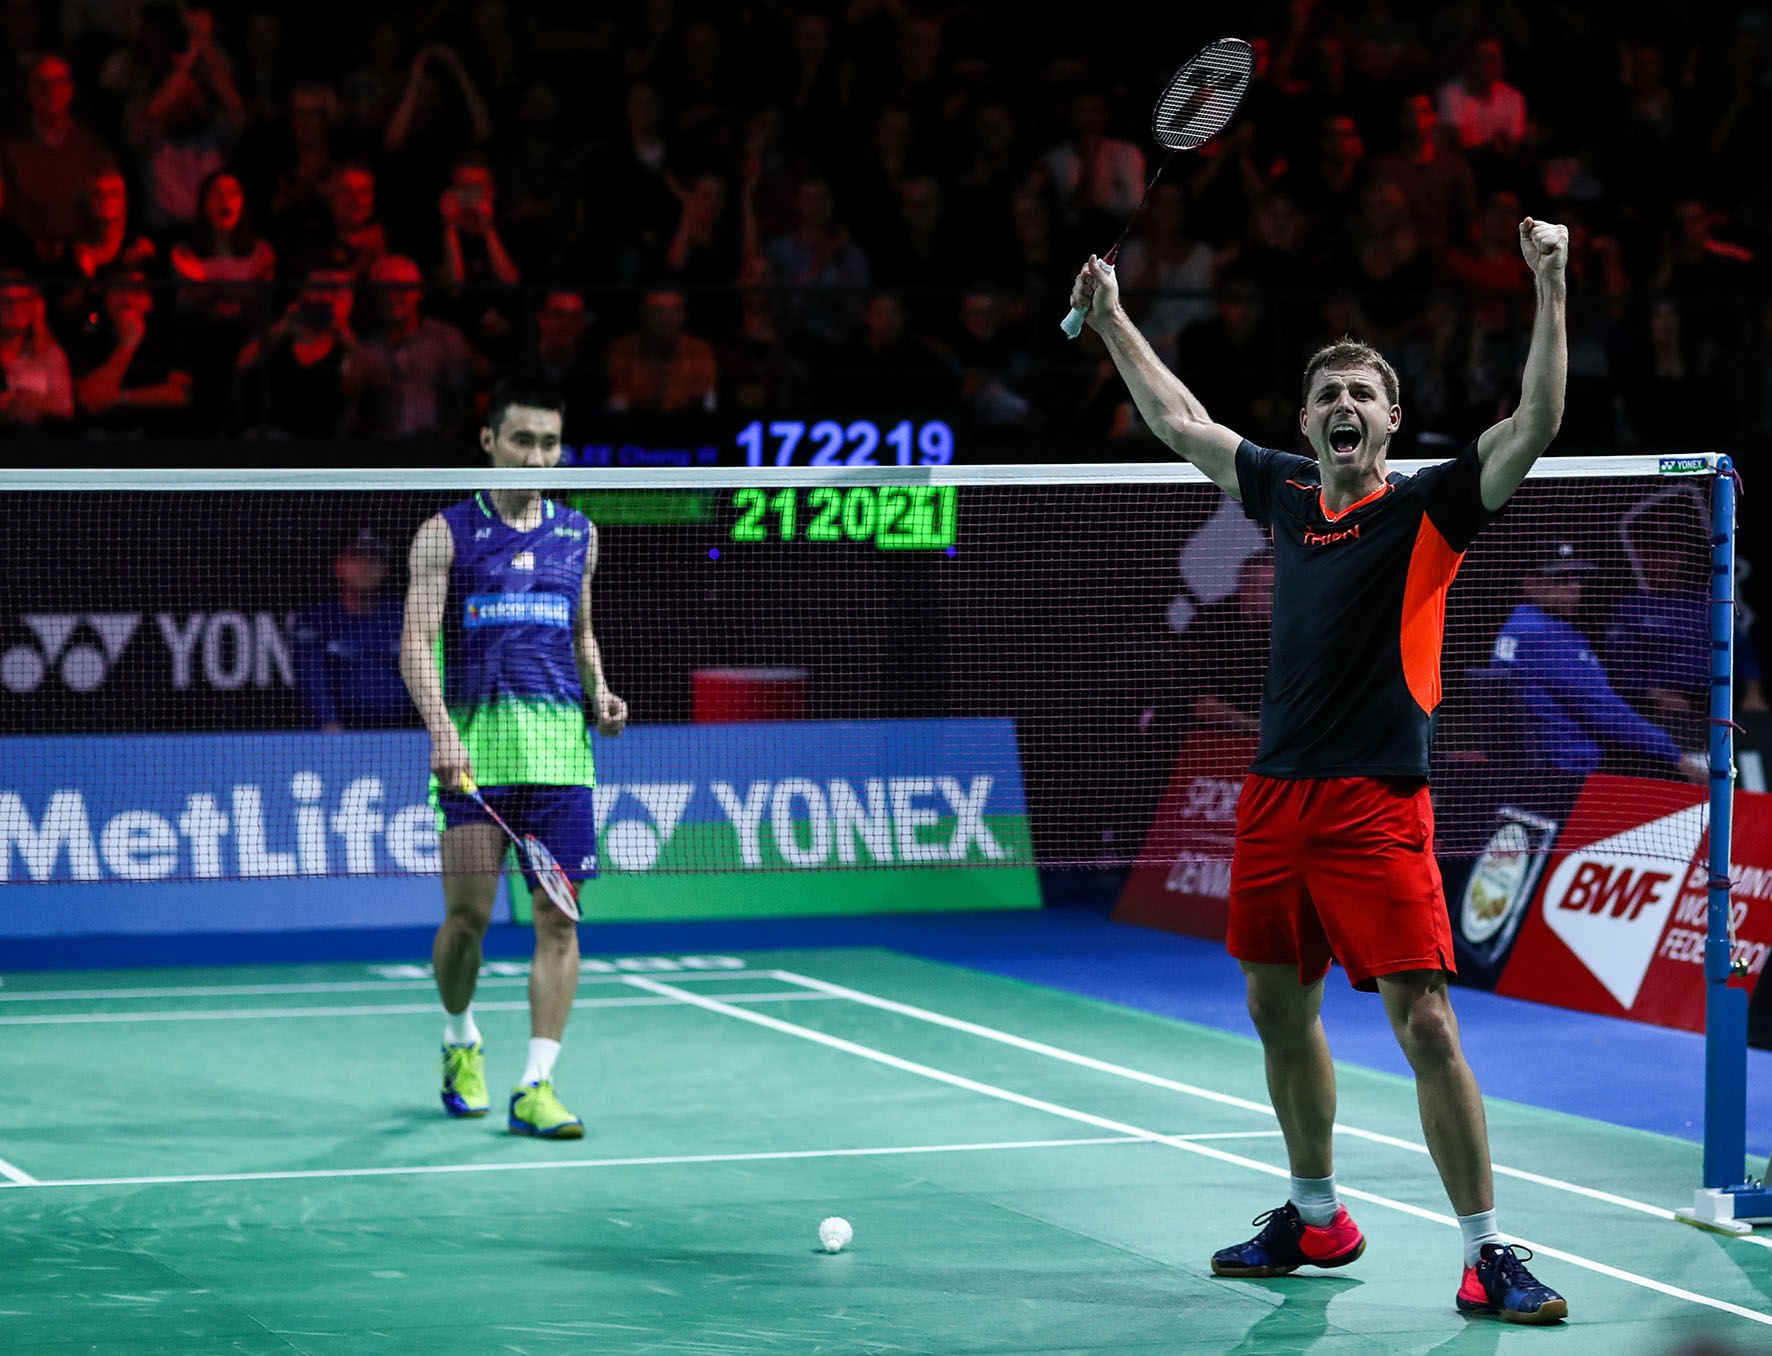 Brice Leverdez (right) and Lee Chong Wei